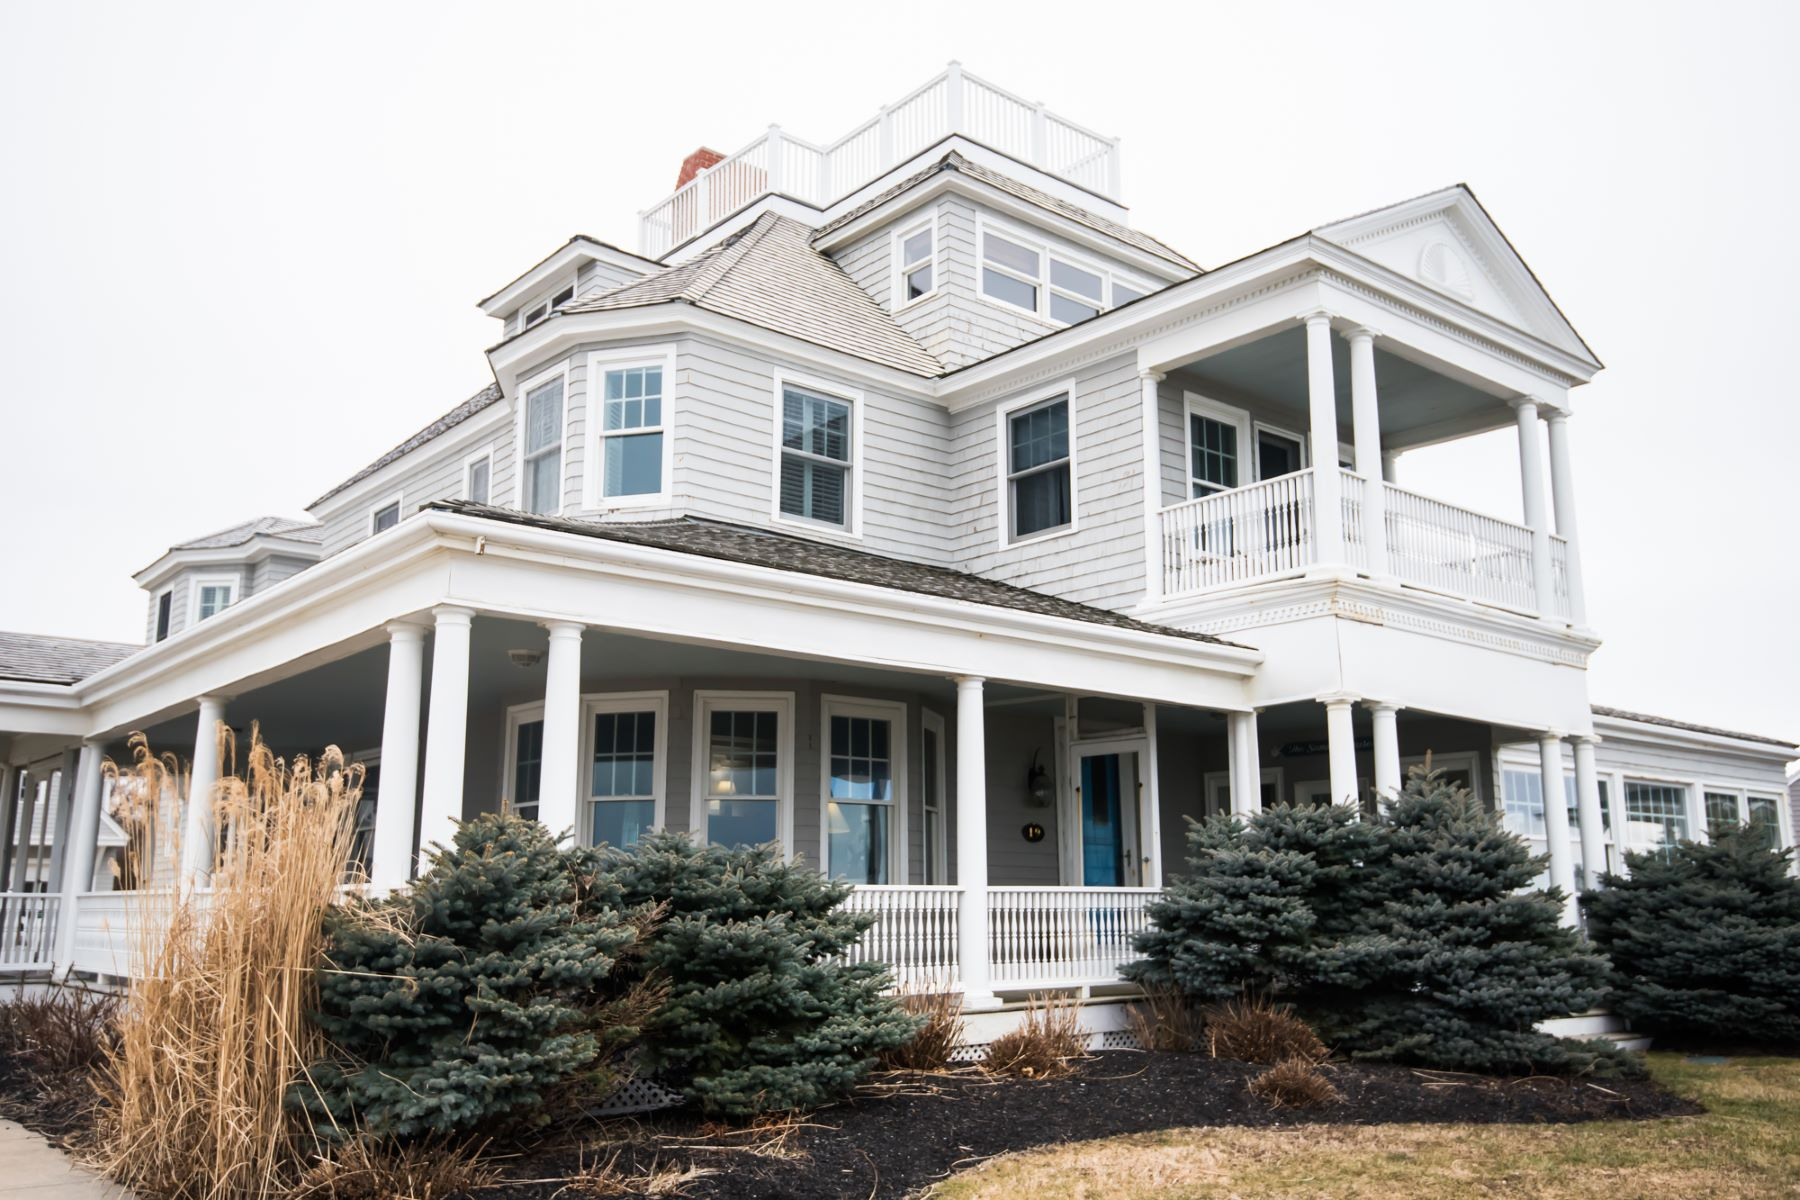 Single Family Homes for Active at Minot Victorian 19 Glades Rd. Scituate, Massachusetts 02066 United States